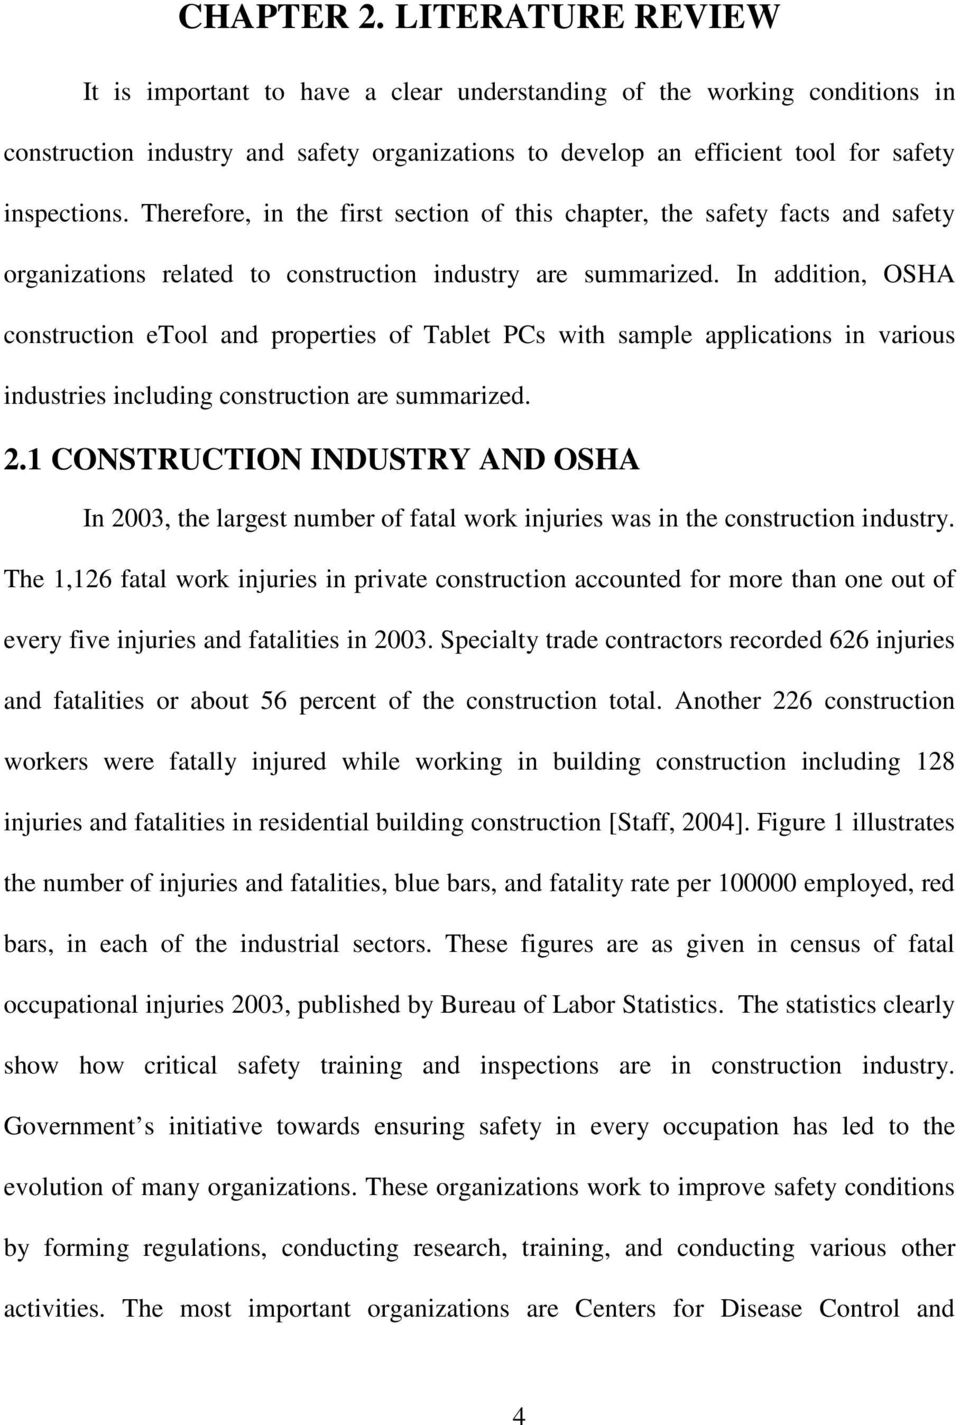 Therefore, in the first section of this chapter, the safety facts and safety organizations related to construction industry are summarized.